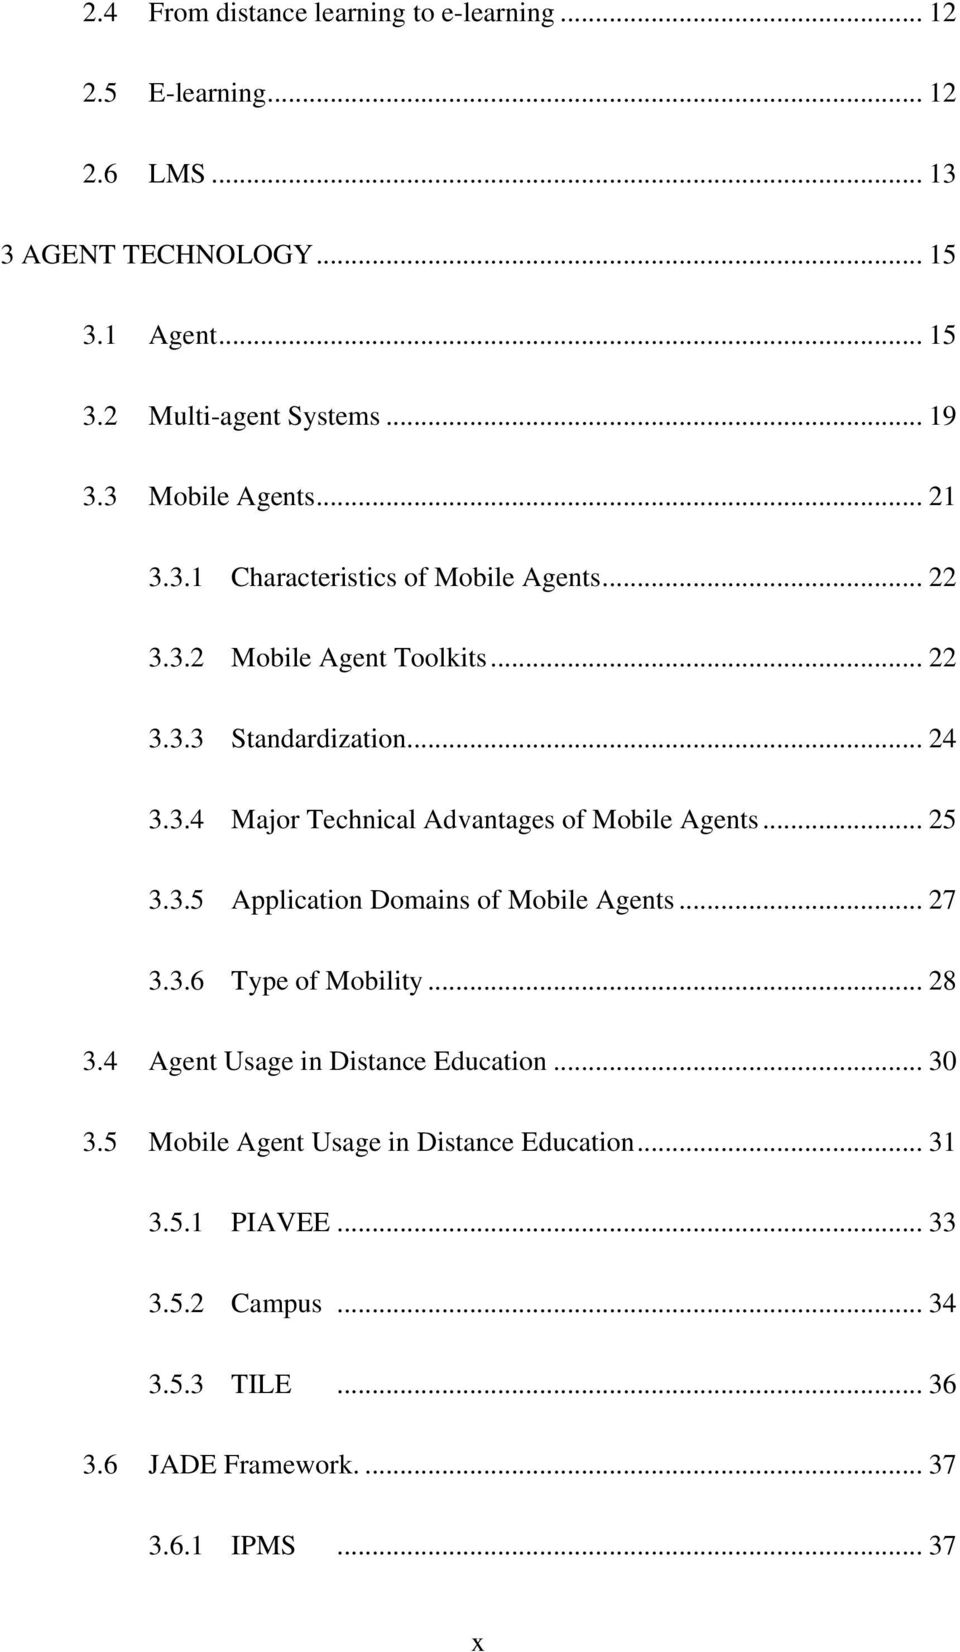 .. 25 3.3.5 Application Domains of Mobile Agents... 27 3.3.6 Type of Mobility... 28 3.4 Agent Usage in Distance Education... 30 3.